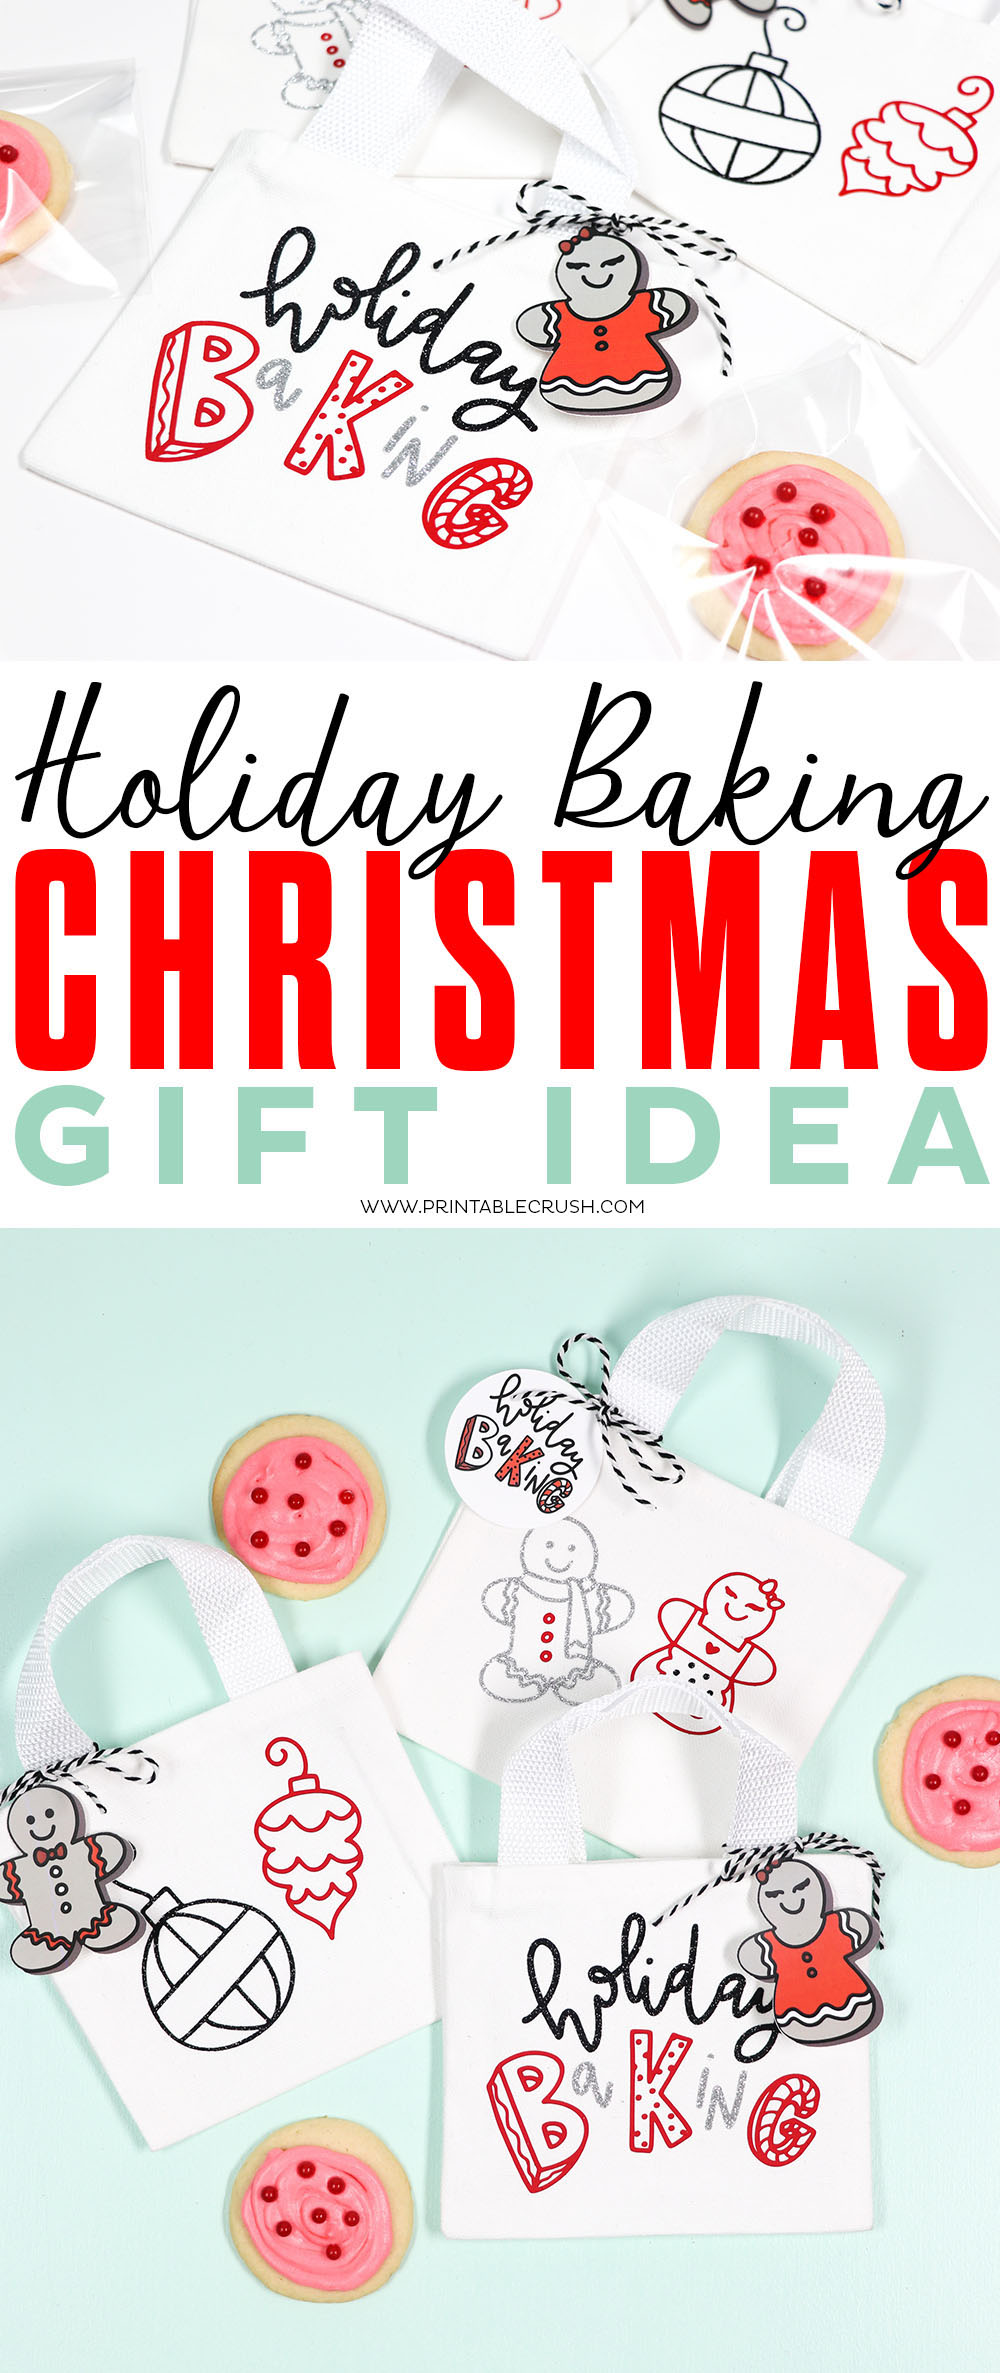 Christmas ideas for him gift baskets